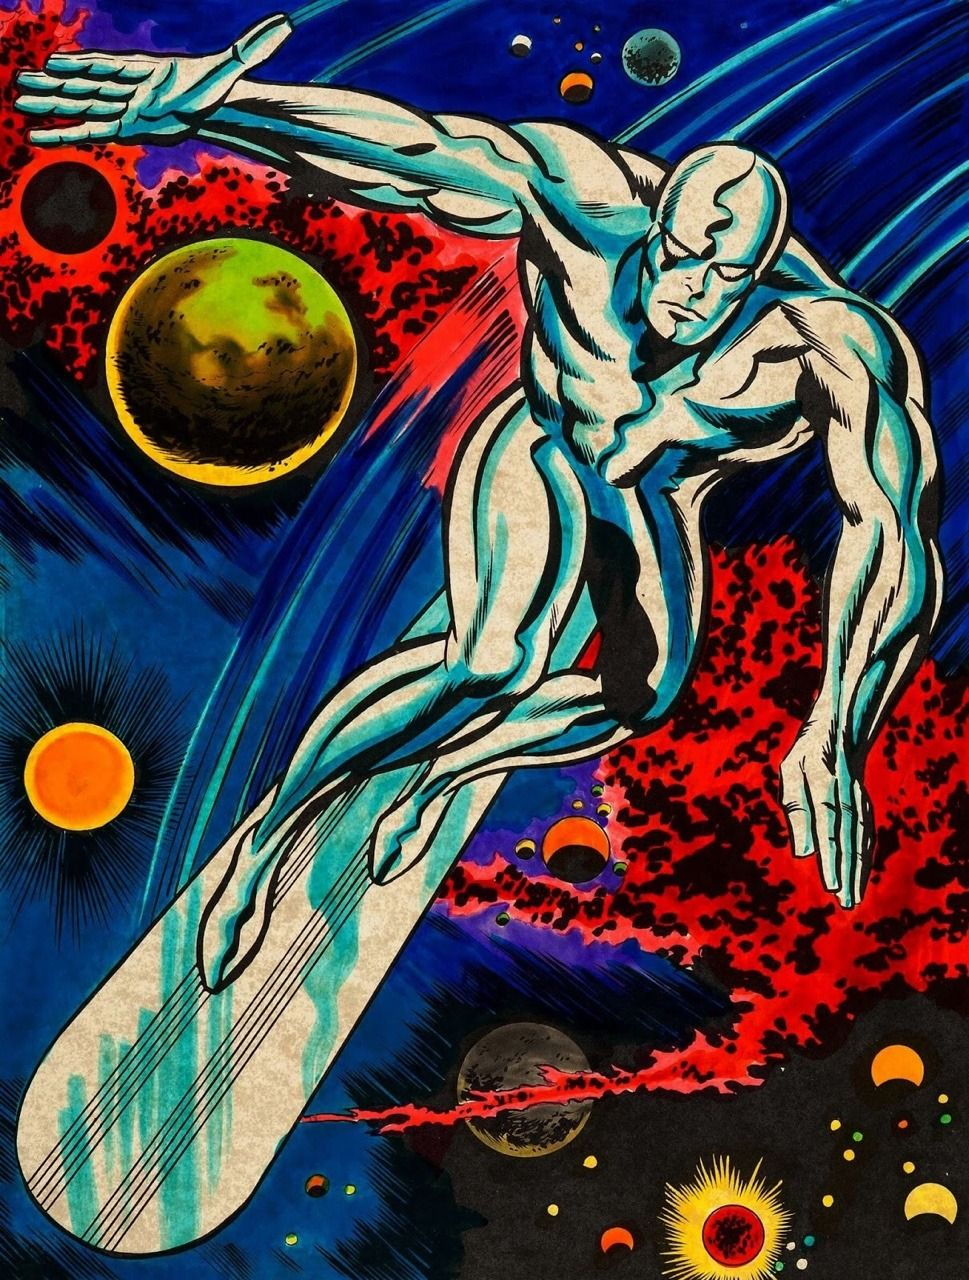 The Silver Surfer, by Jack Kirby